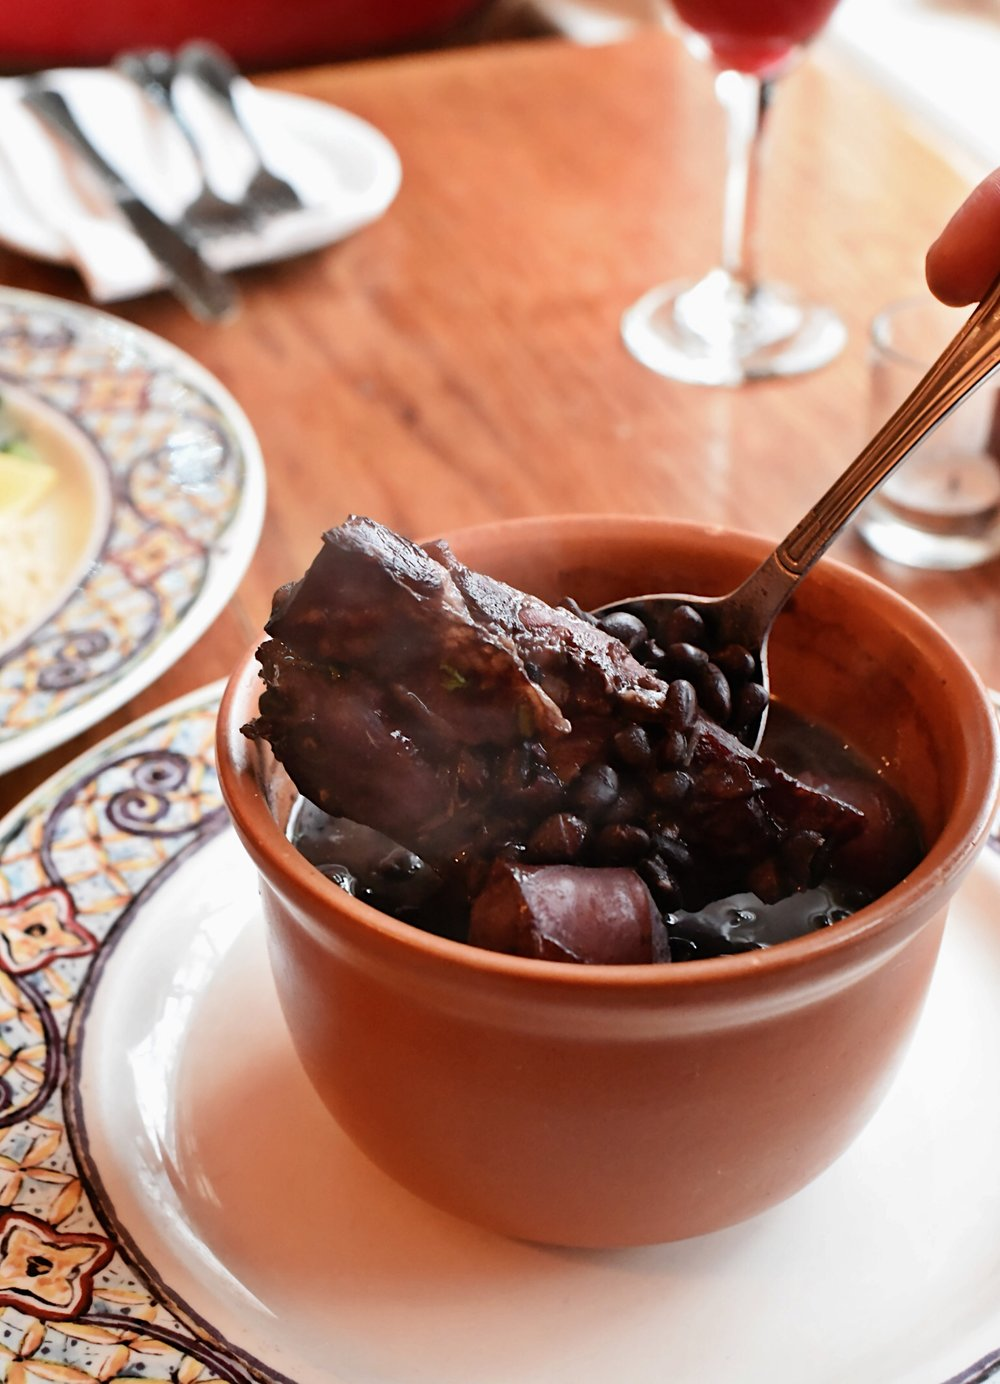 Now offering our Feijoada, Brazil's National Dish!!  (Black beans stewed w/ beef, sausage and ribs)   2lbs Pack (2-3 servings) - $14    3lbs Pack (4-6 servings) - $18